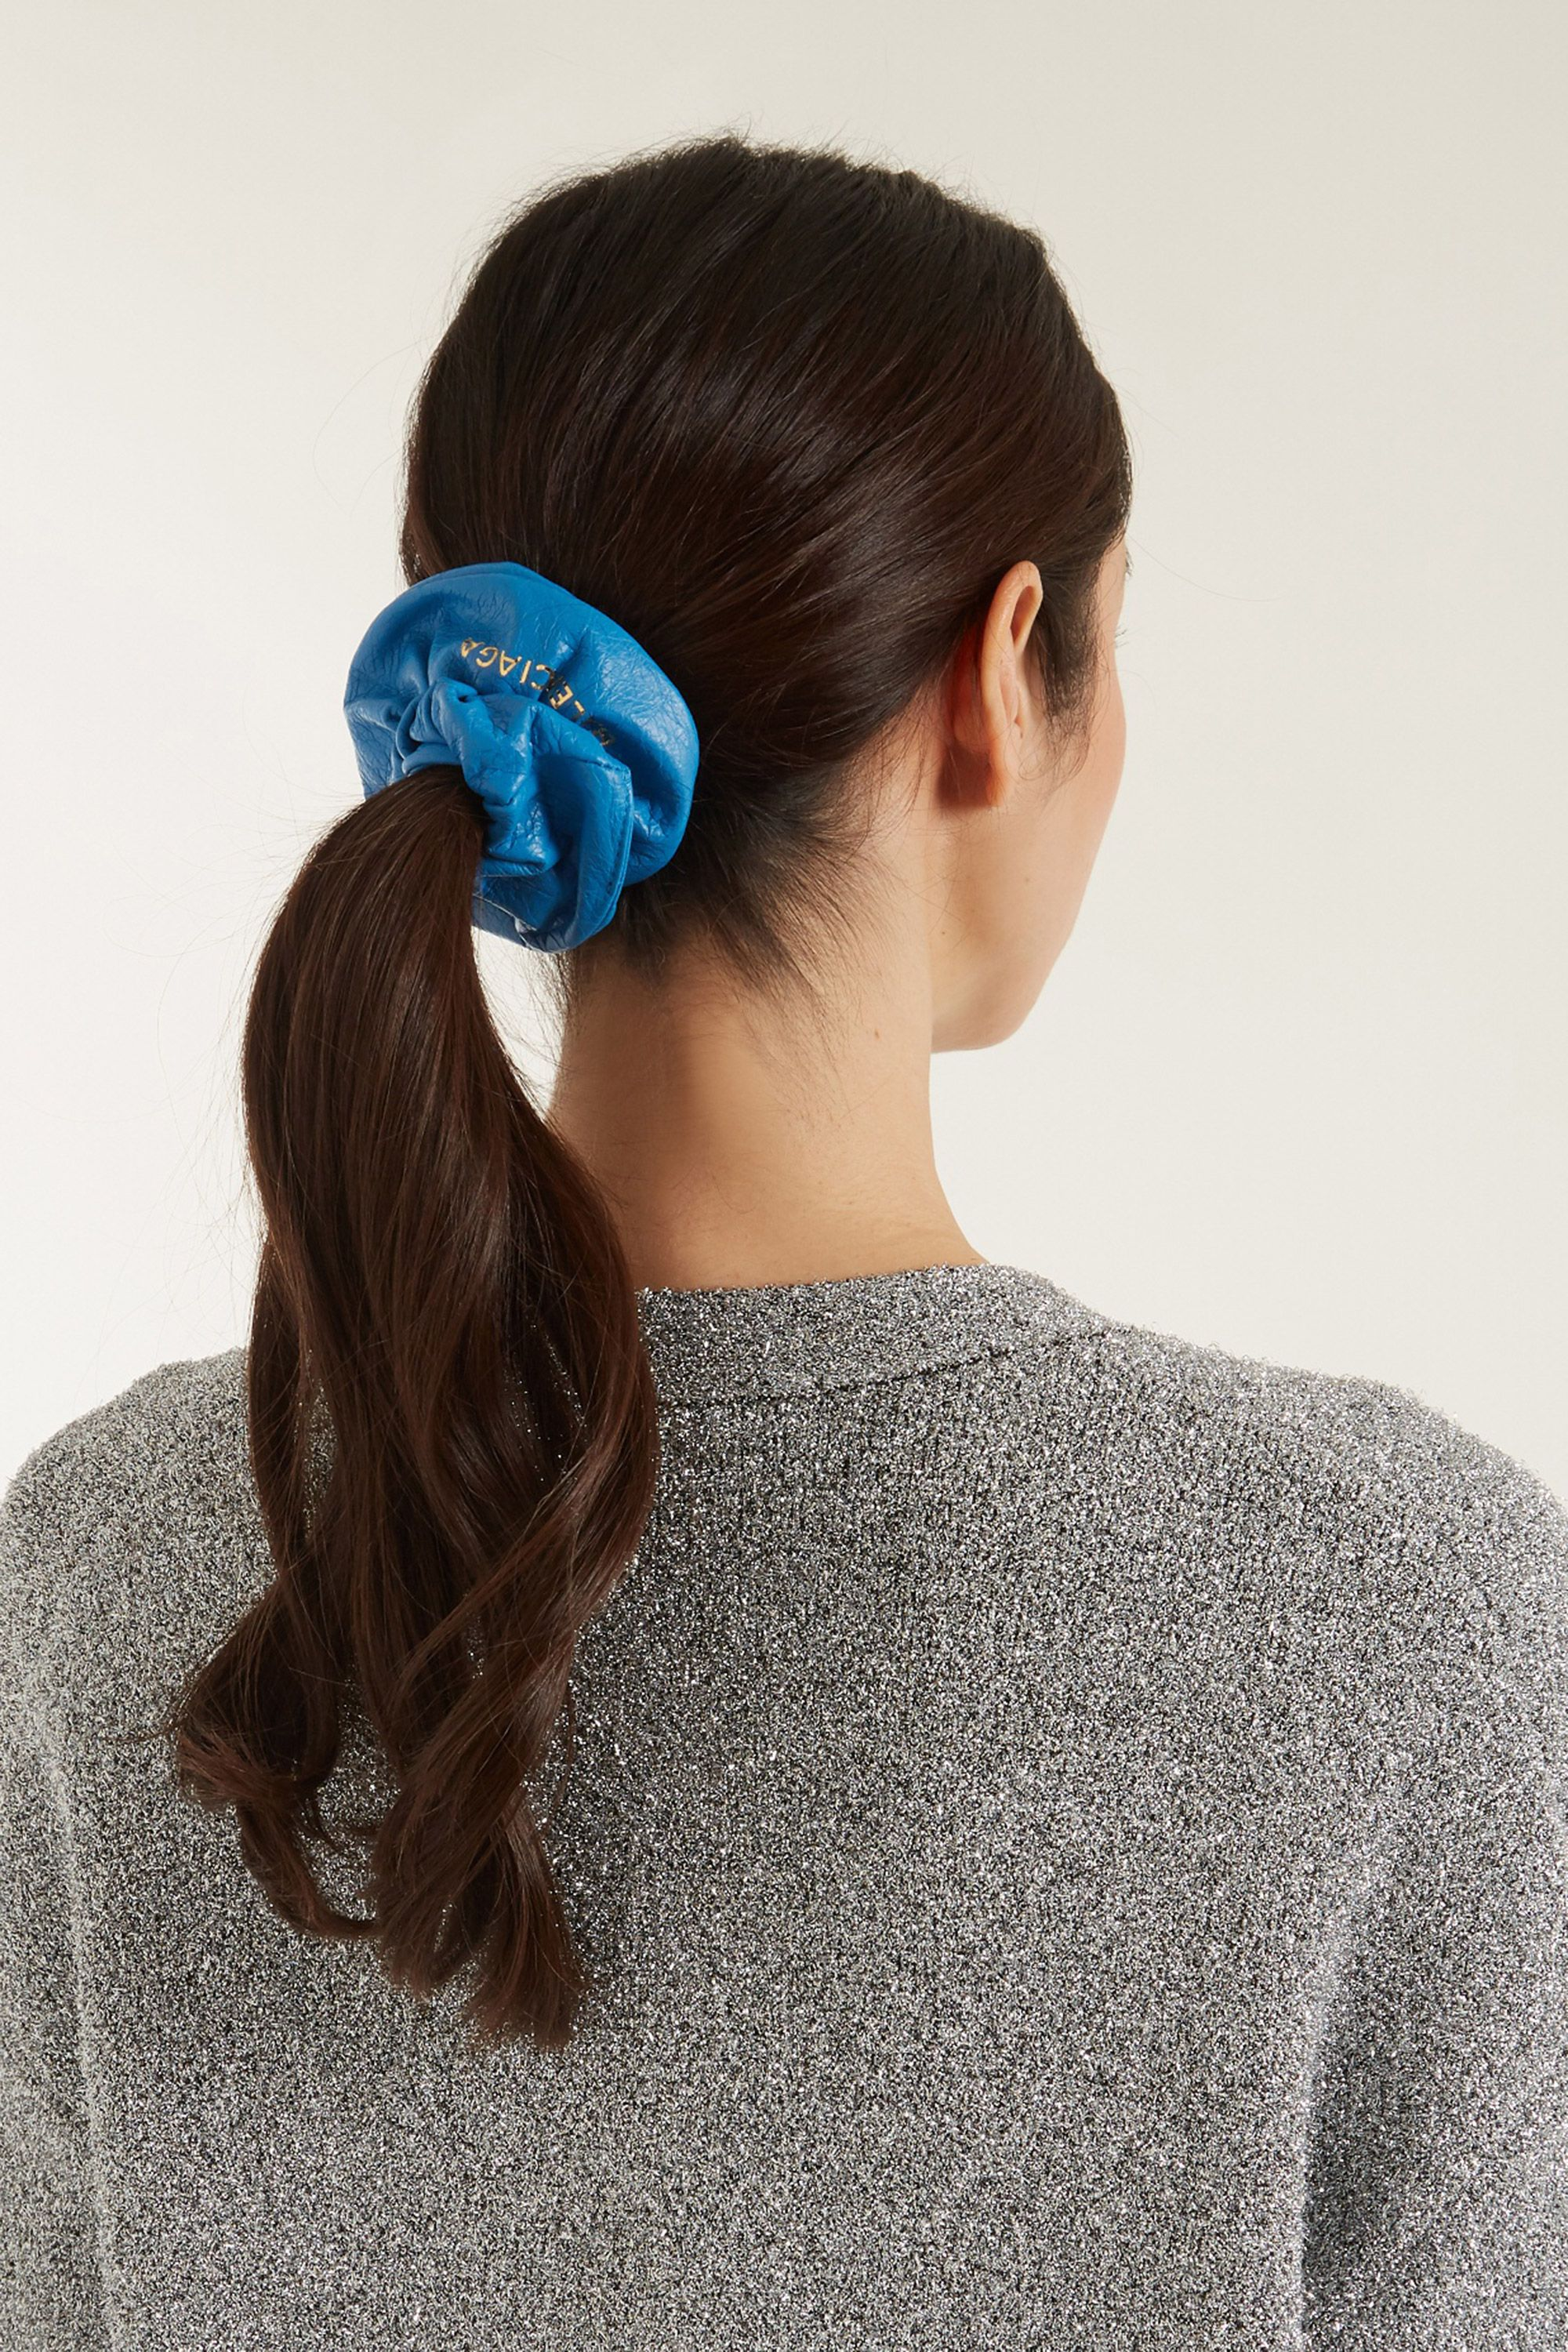 balenciaga is now selling a hair scrunchie for 145